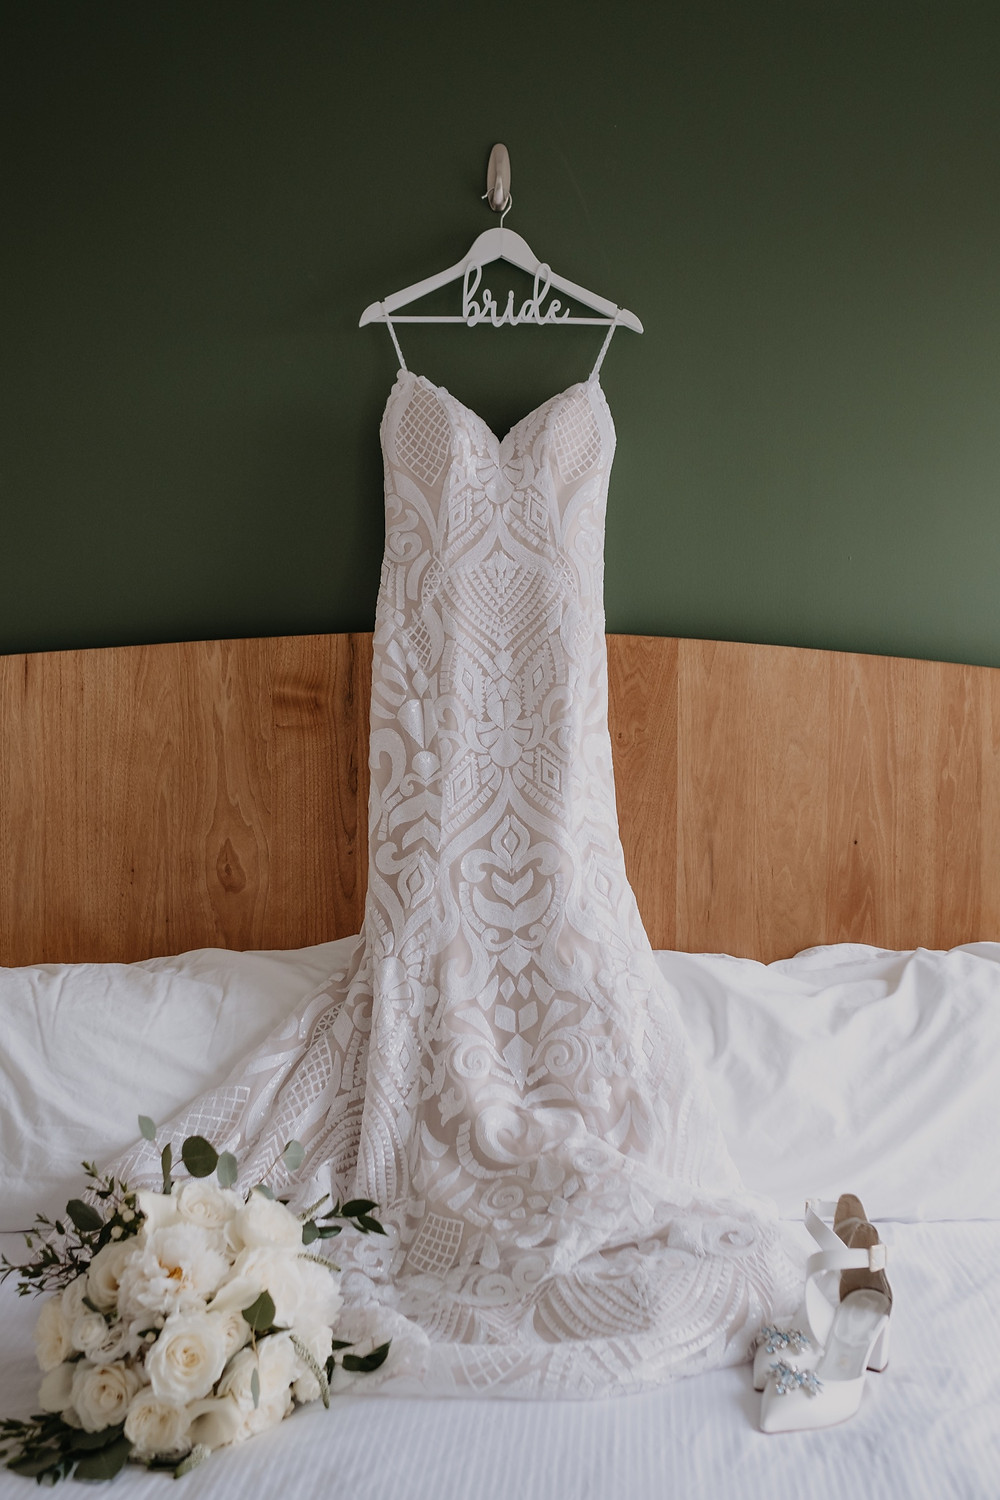 Wedding dress hanging on bride hanger. Photographed by Nicole Leanne Photography.